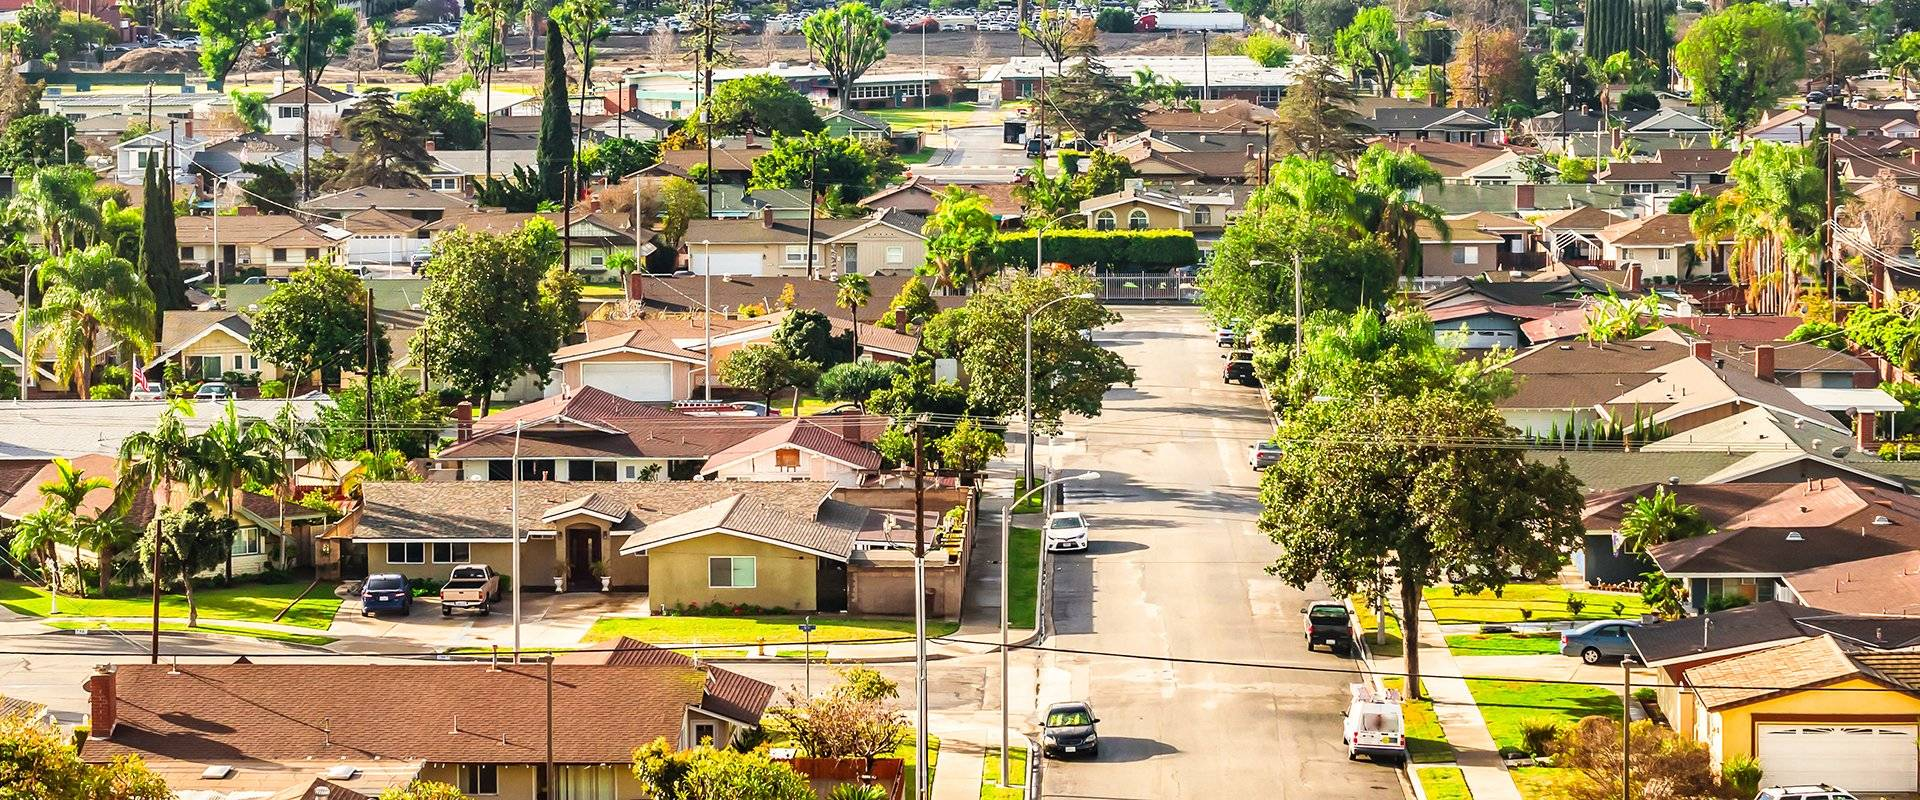 suburbs in southern florida